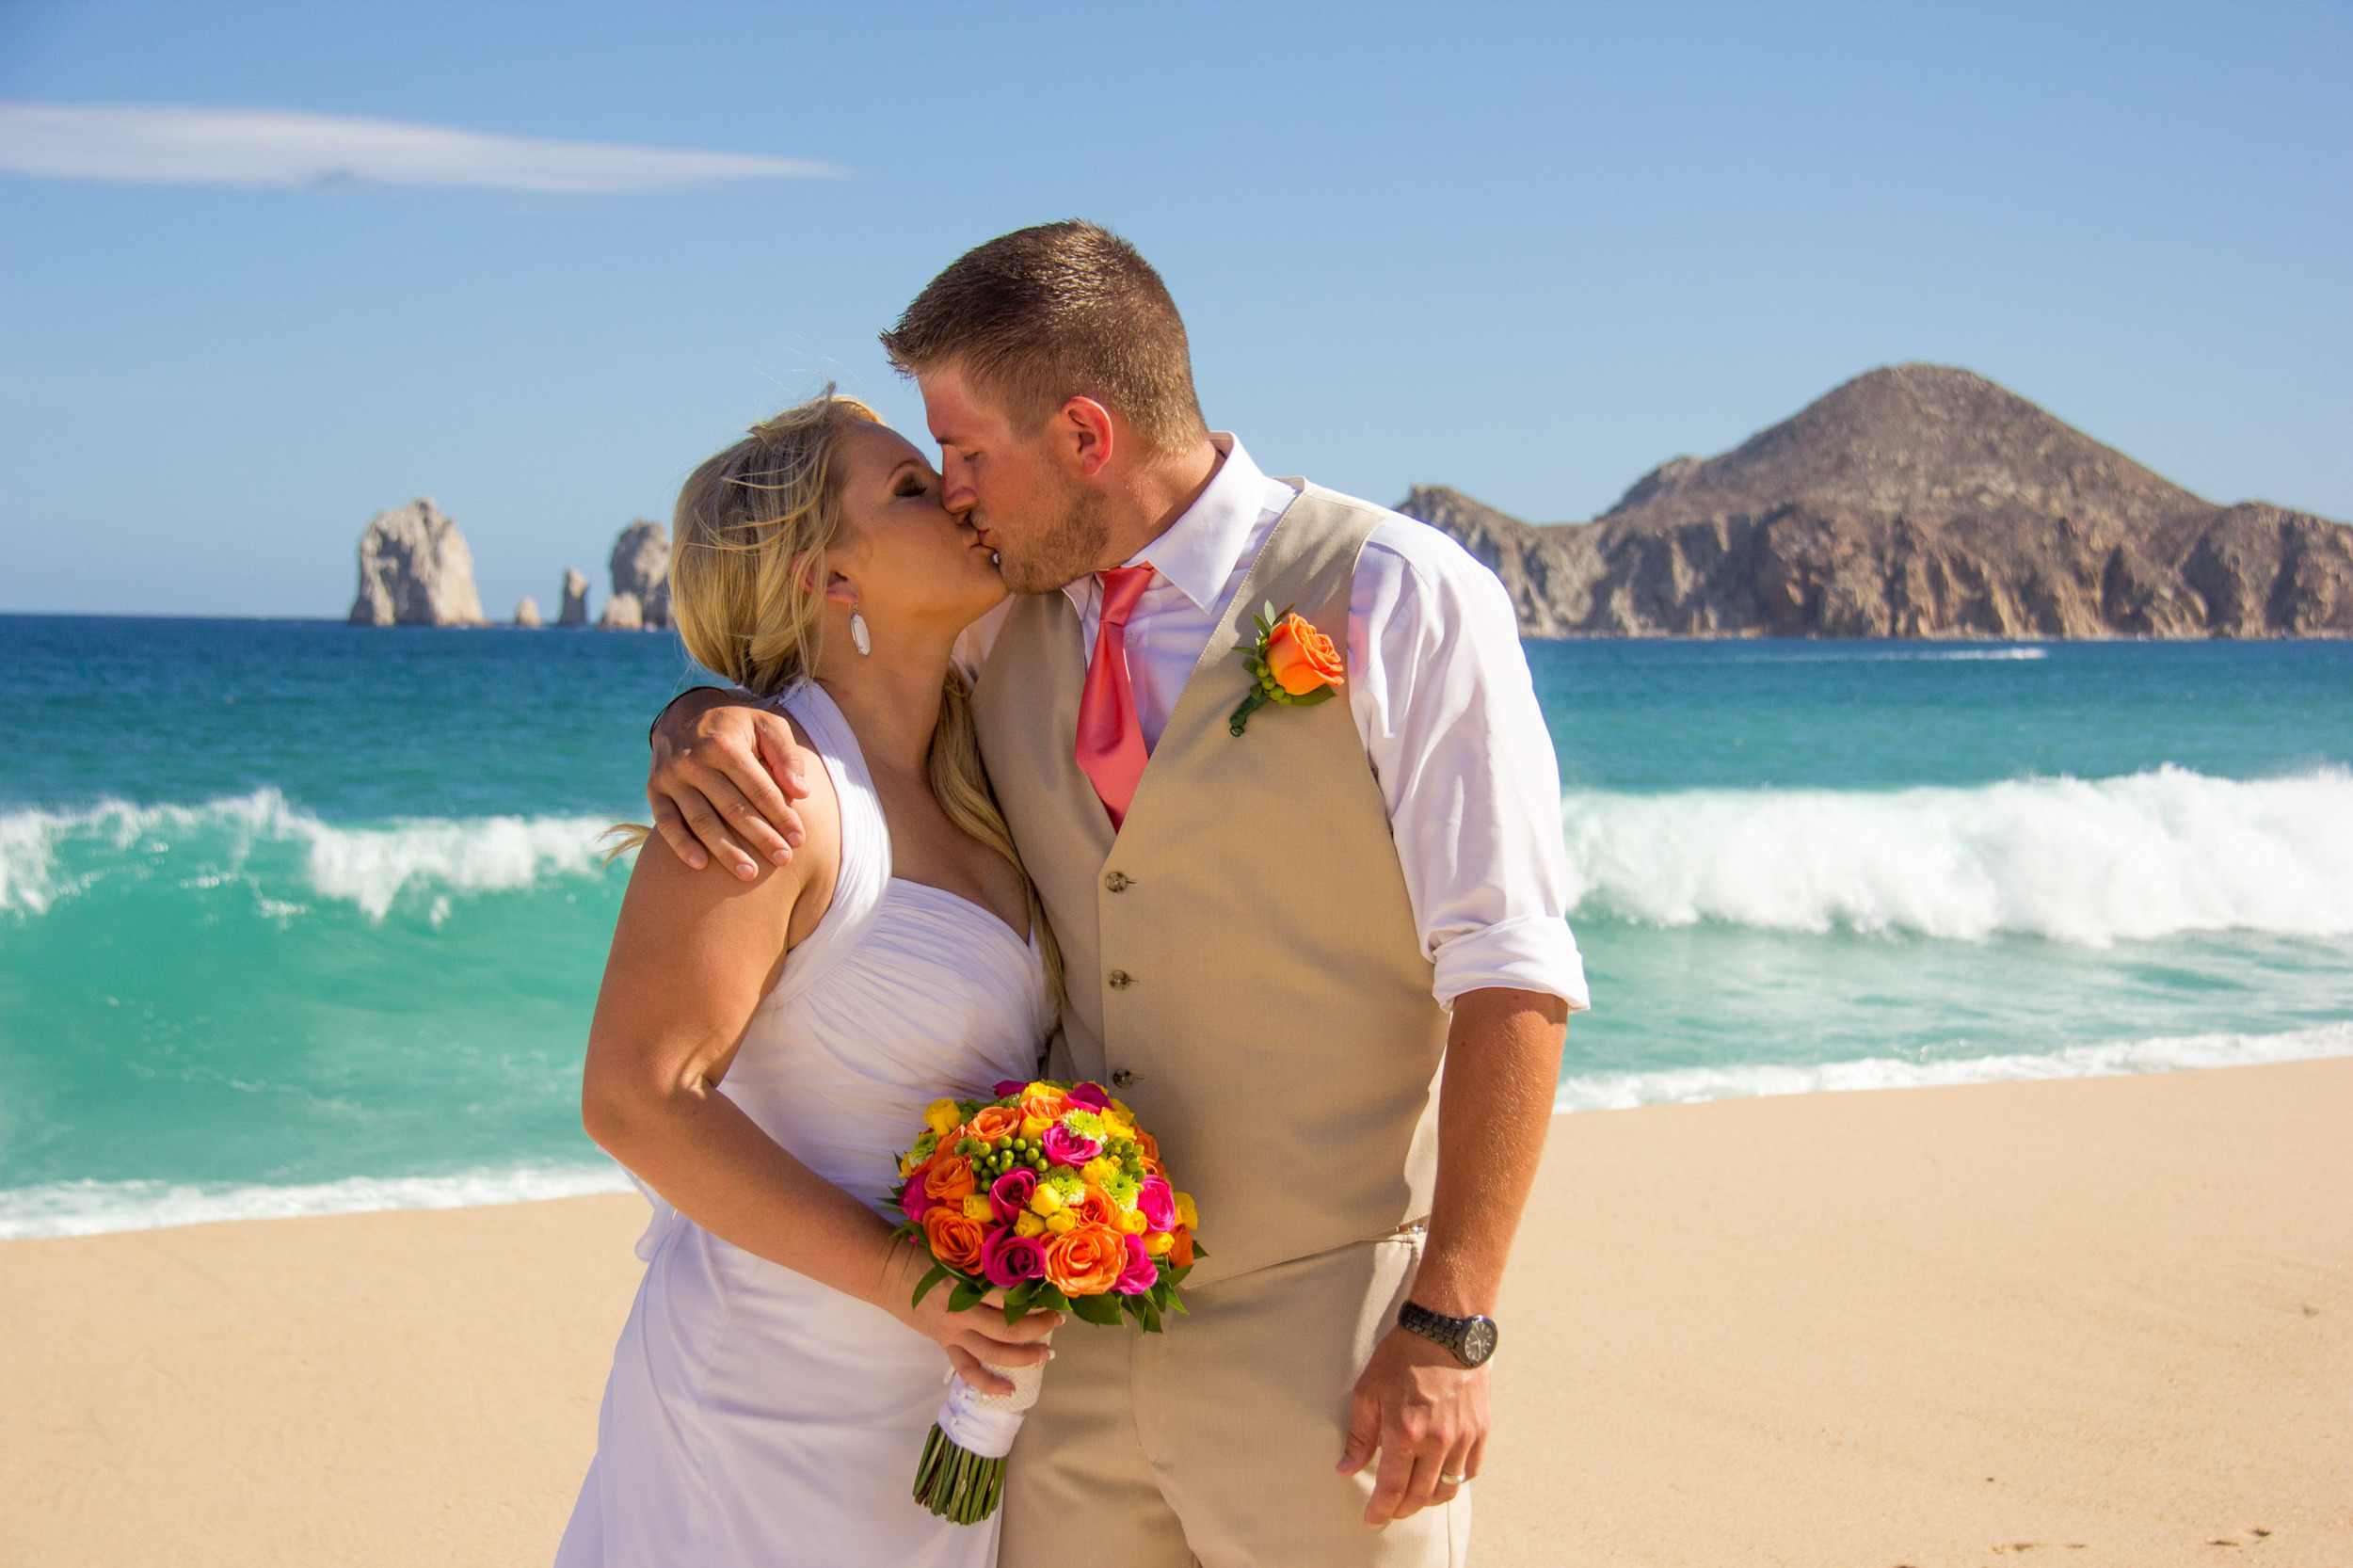 LangfordWeddingCabo2015-0486.jpg